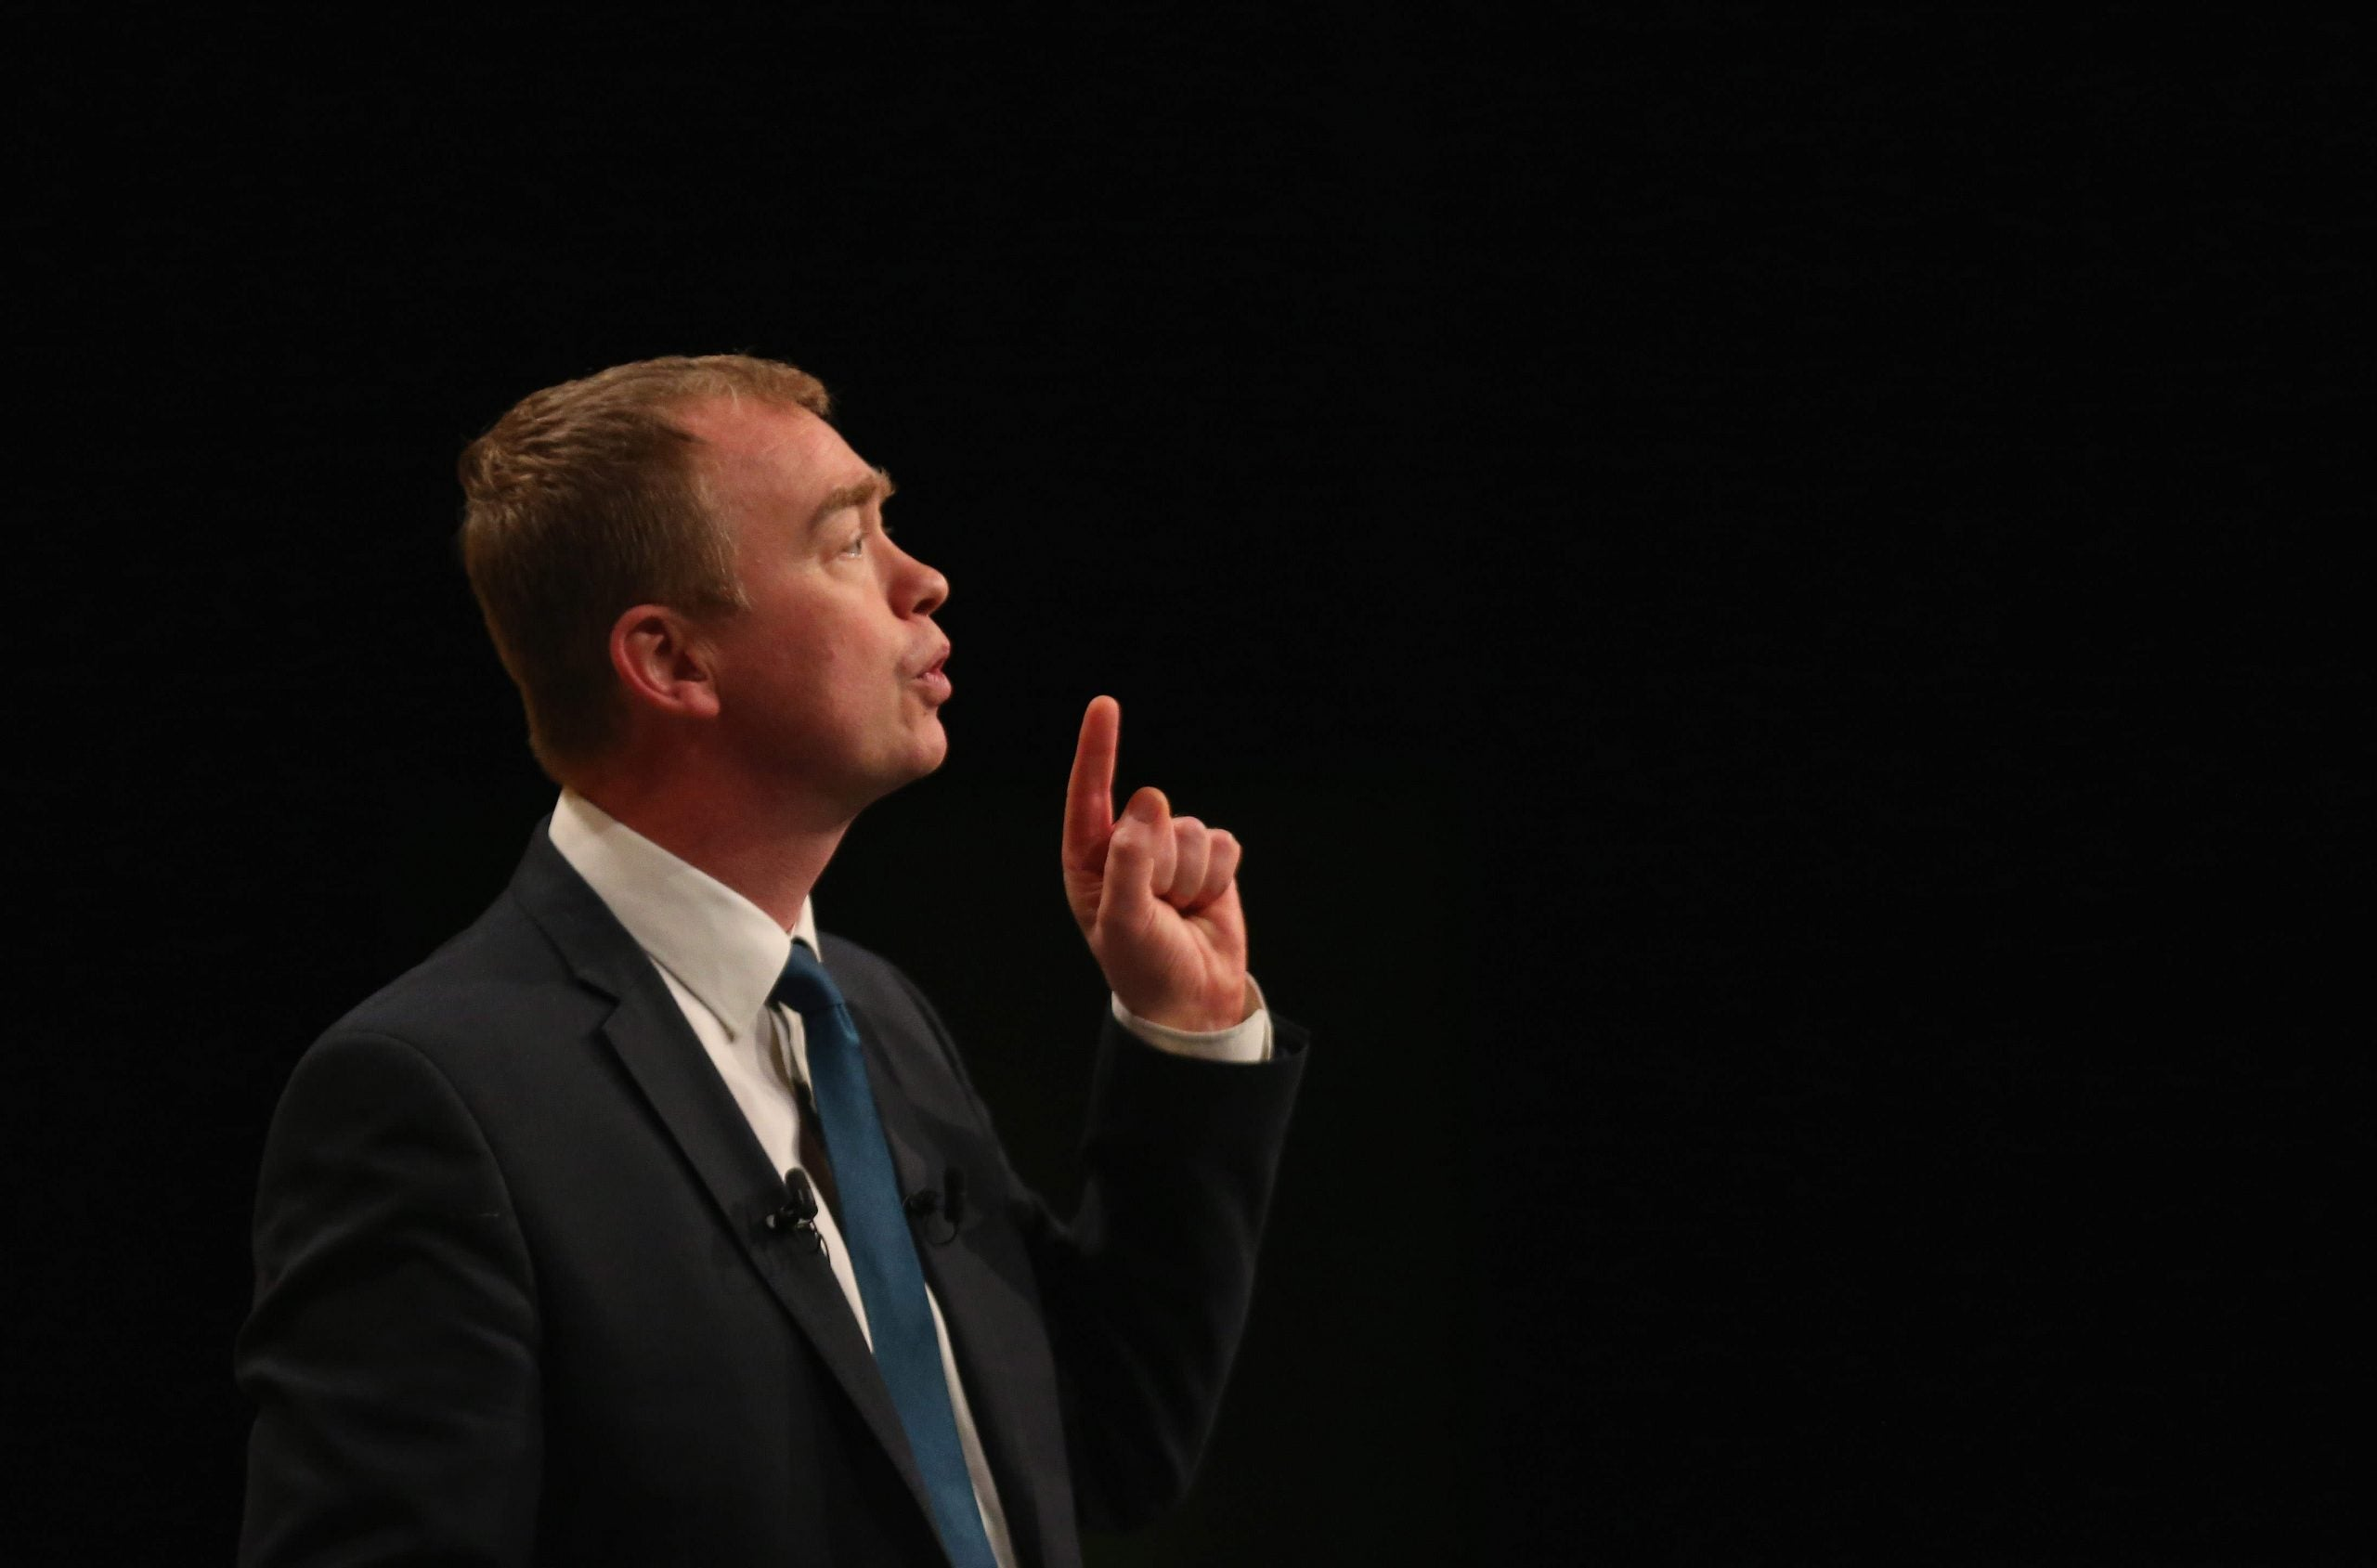 Don't underestimate Tim Farron - he's a man who knows how to win